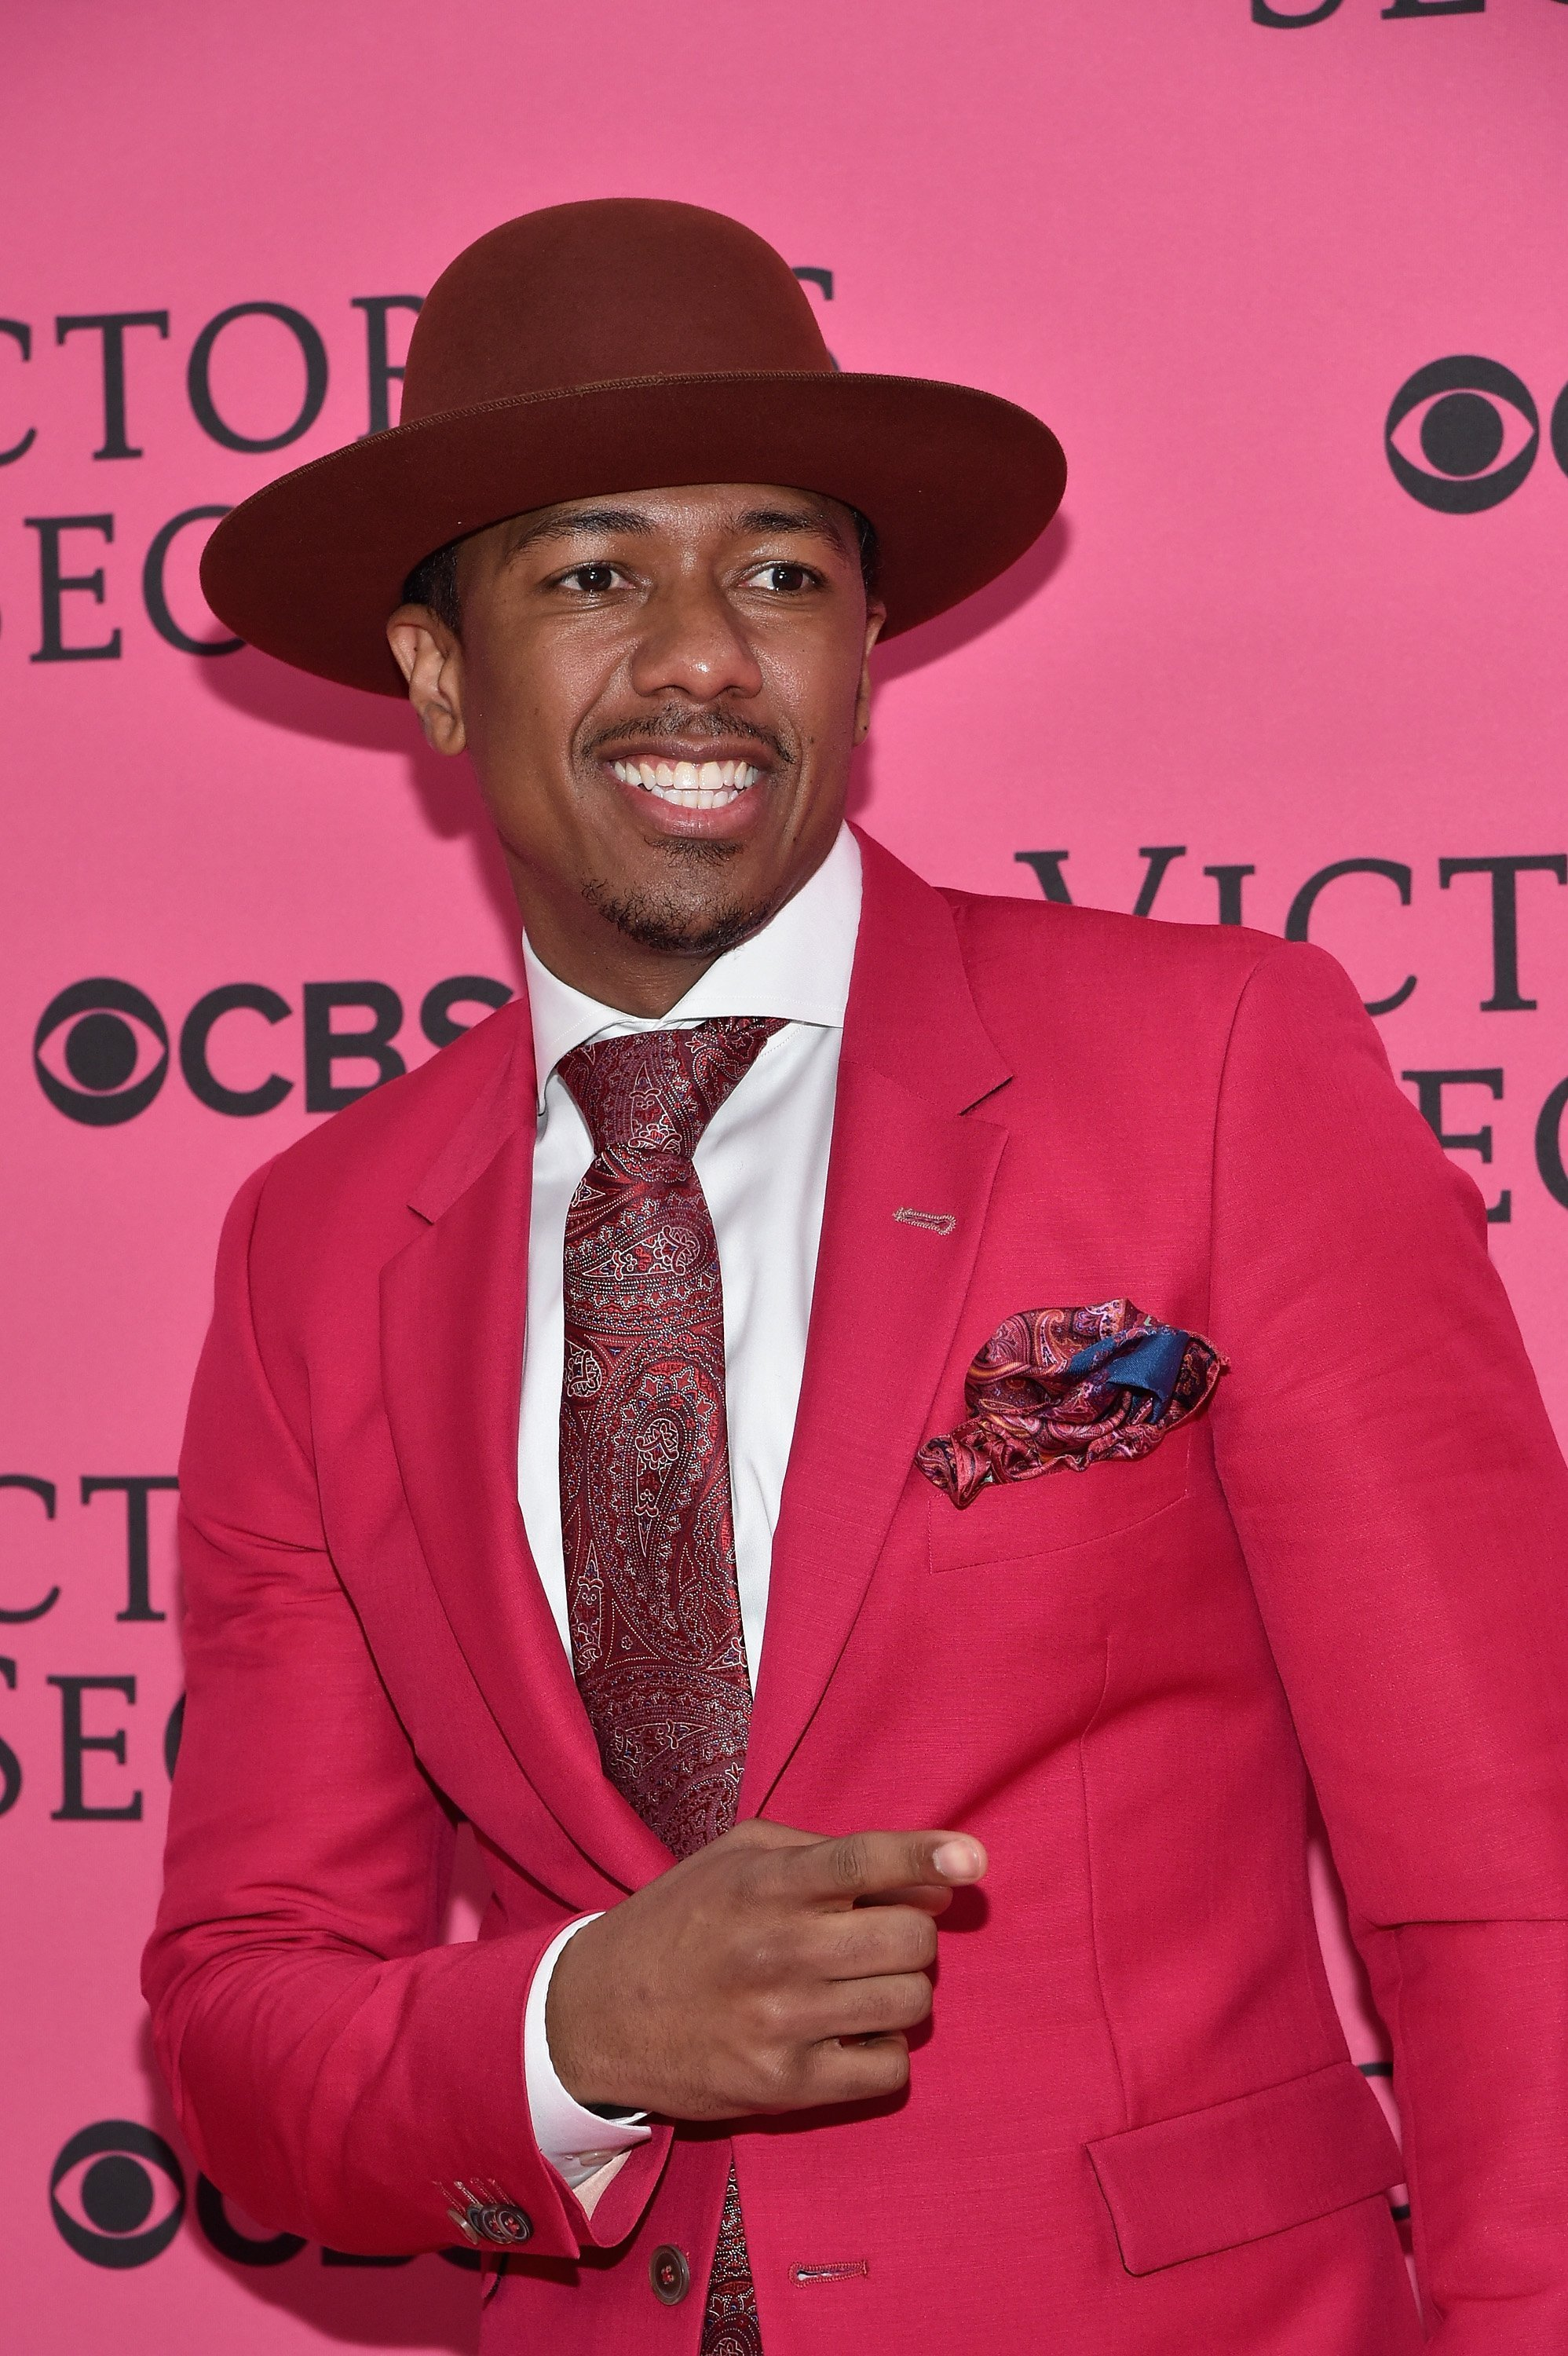 Father-of-three Nick Cannon at the 2015 Victoria's Secret Fashion Show. | Photo: Getty Images